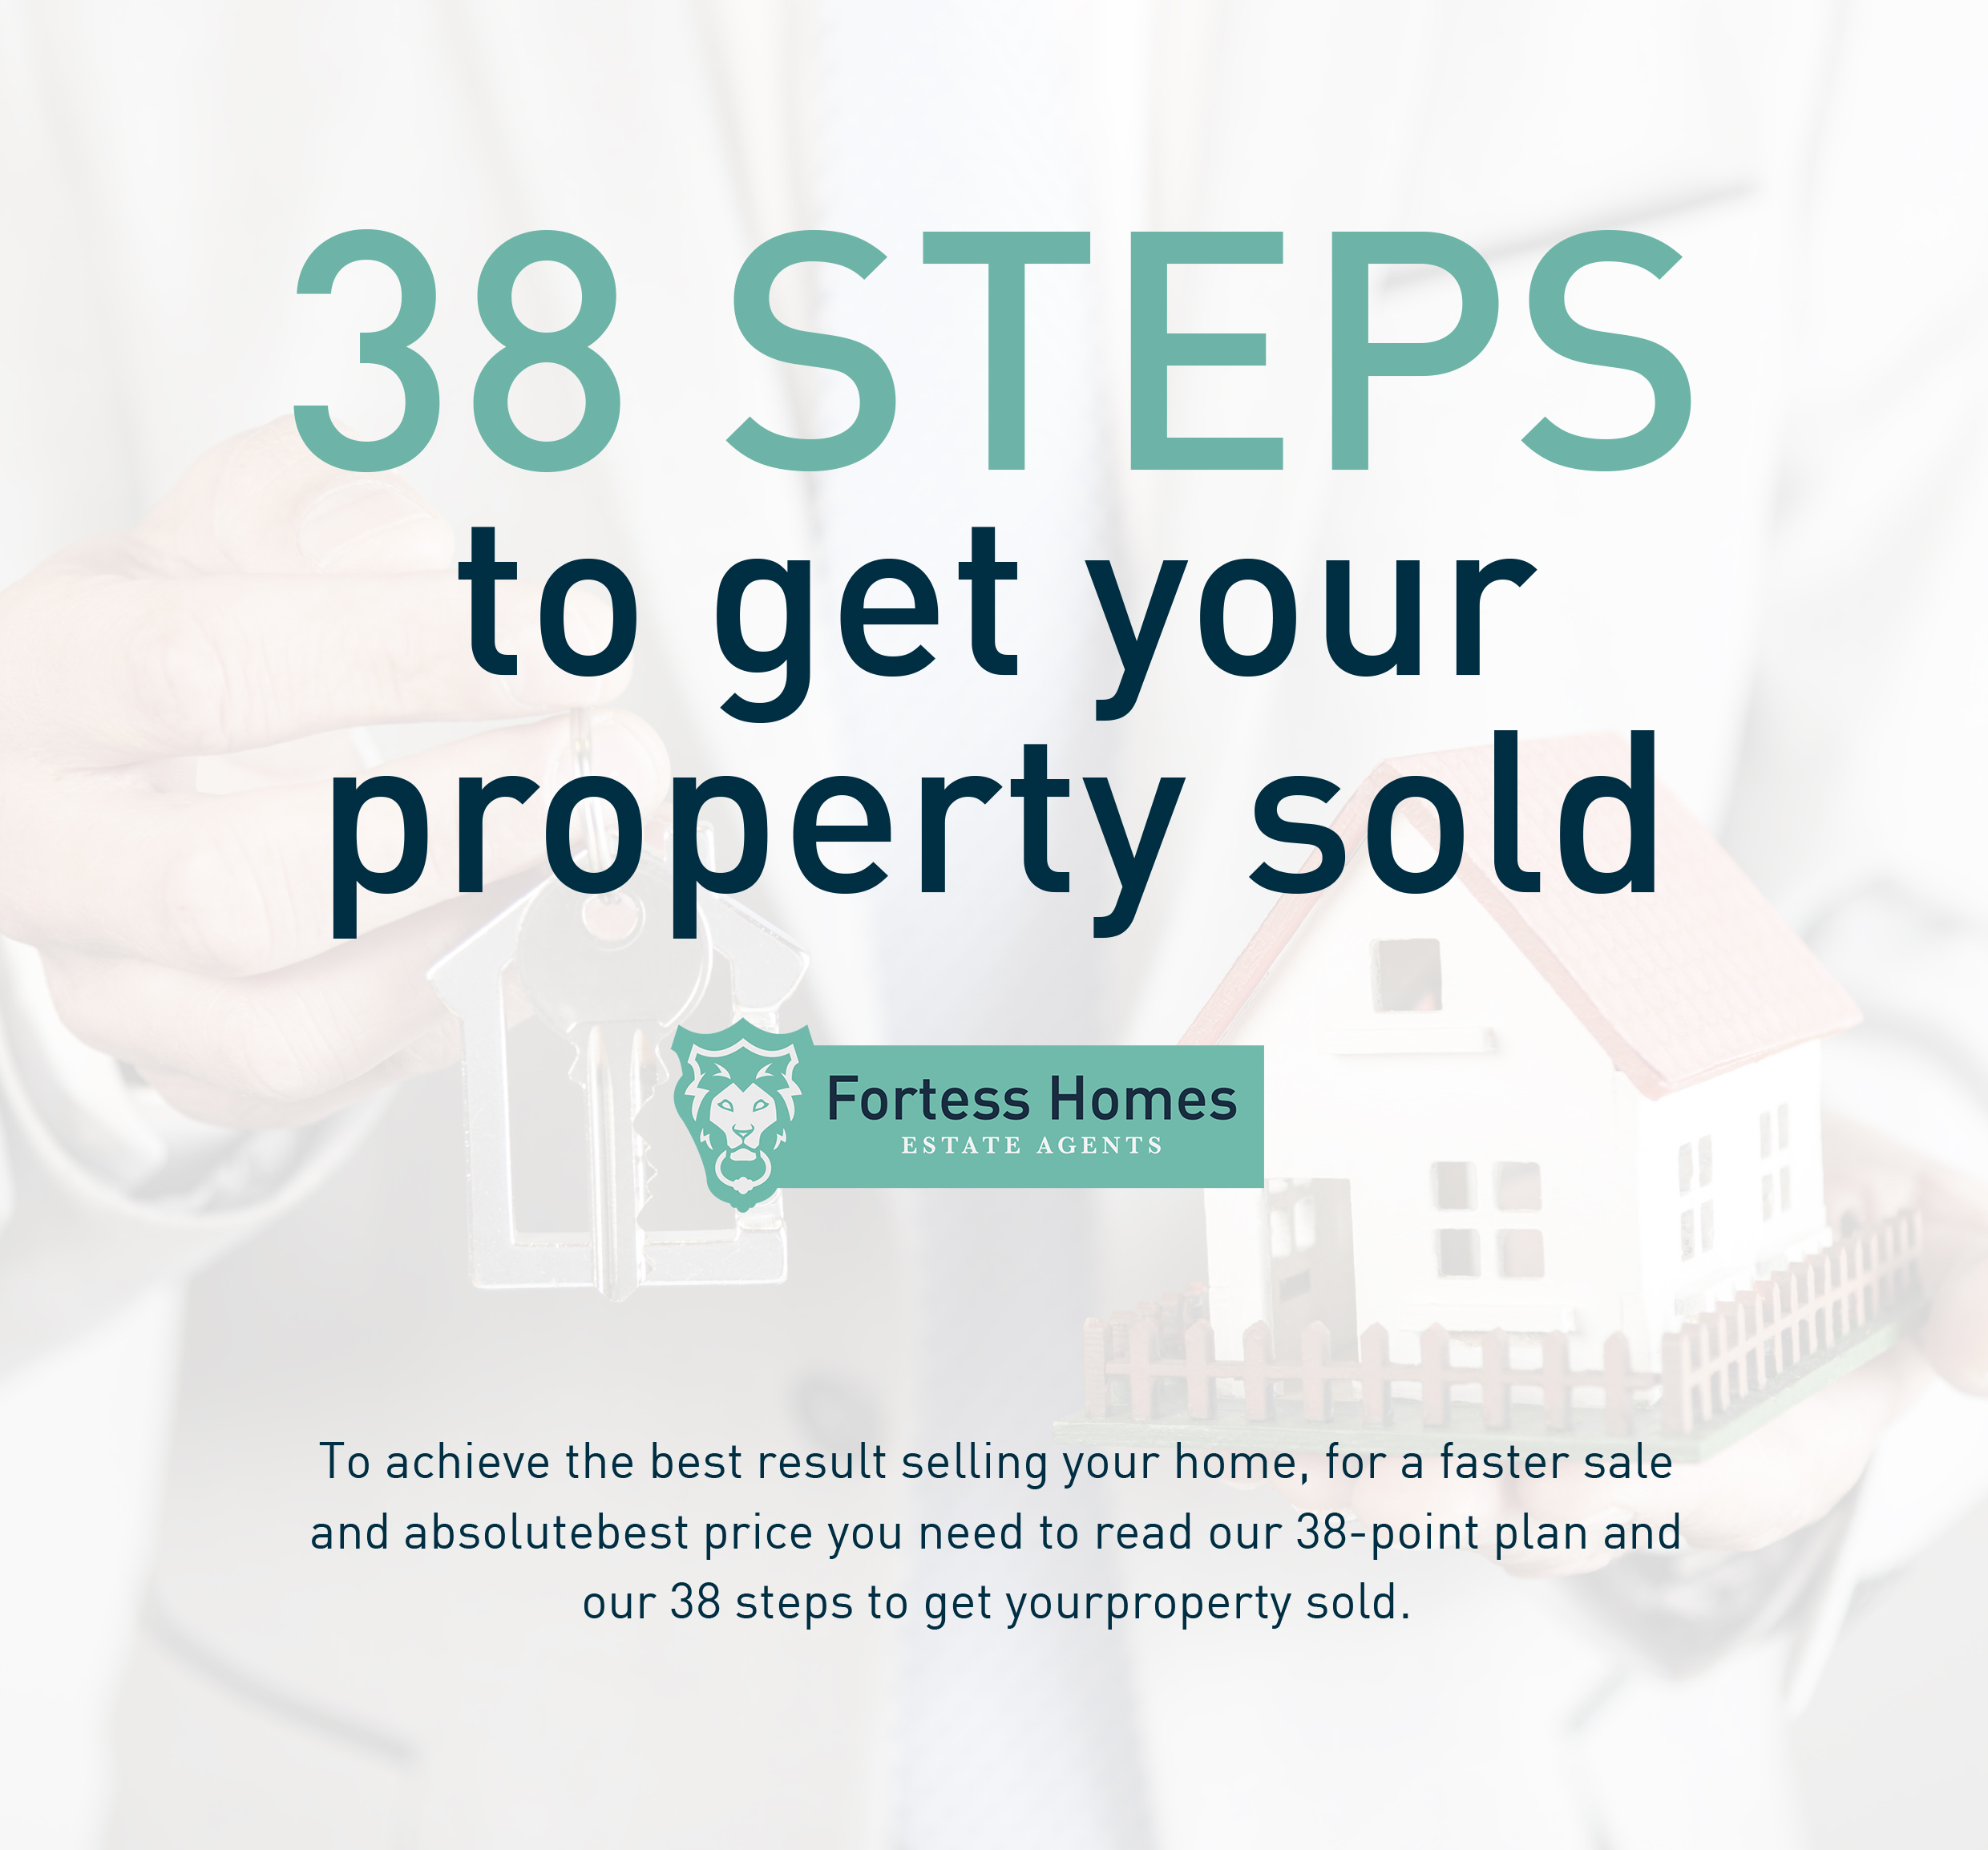 38 steps to get your property sold